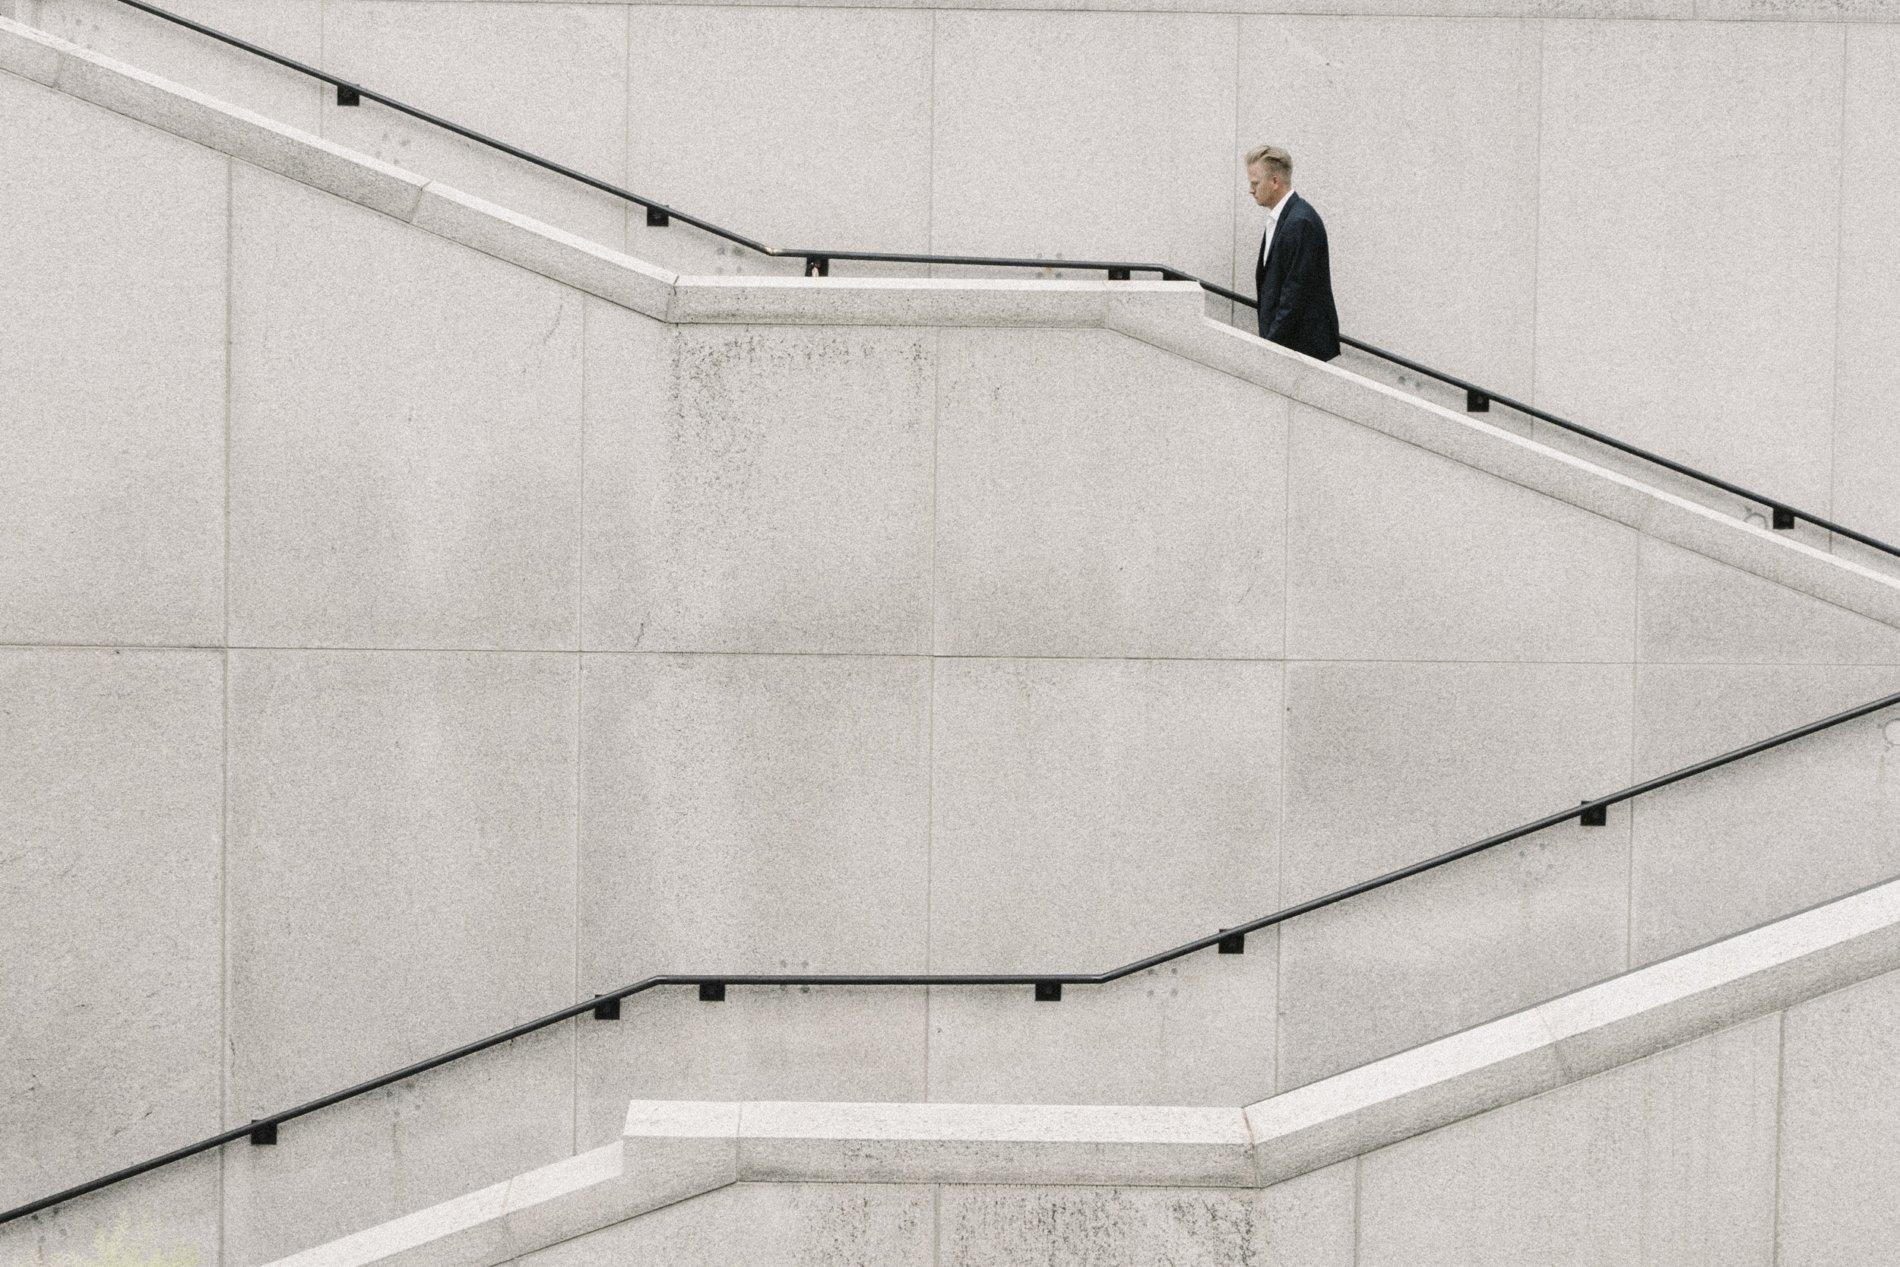 stairs business